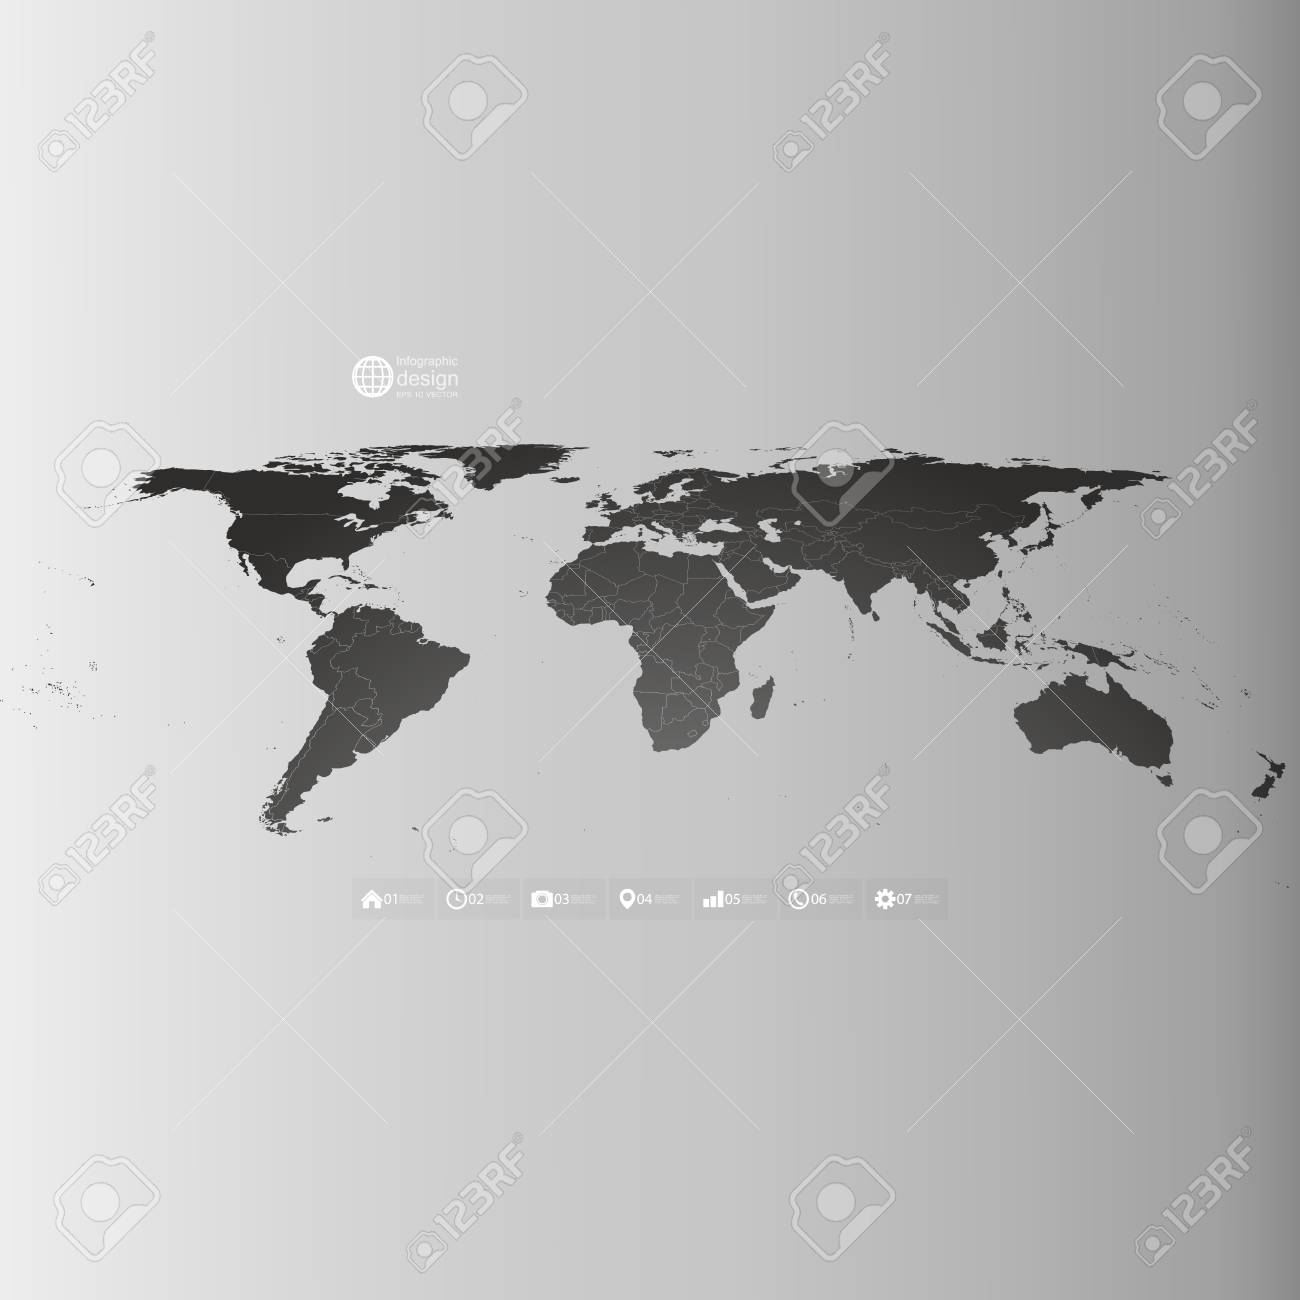 Black world map in perspective infographic vector template for black world map in perspective infographic vector template for business design foto de archivo gumiabroncs Images